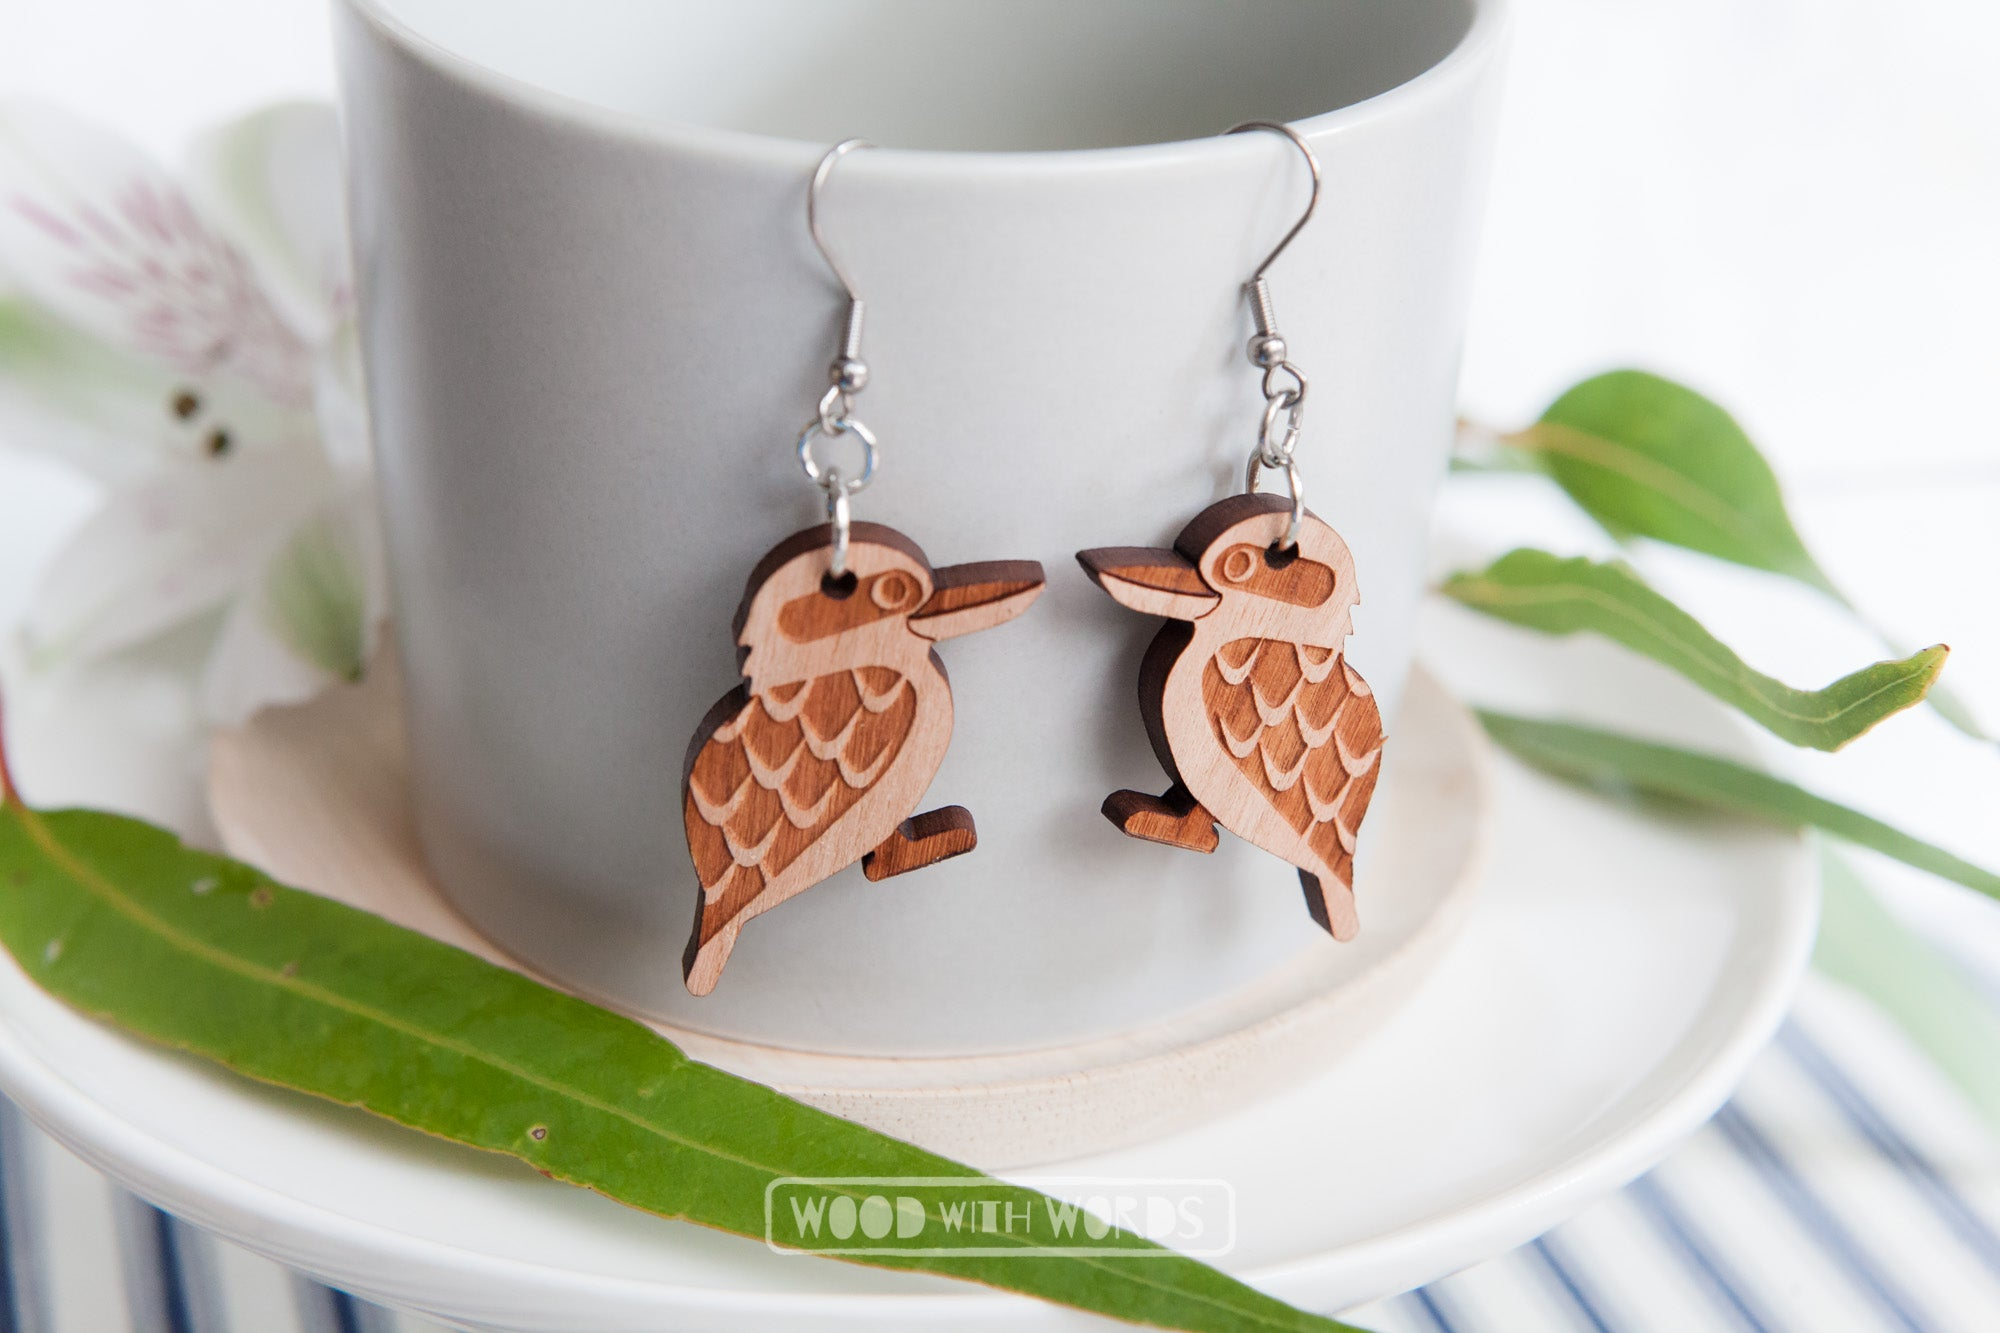 Kookaburra Dangle Earrings by Wood With Words - Silver Hooks